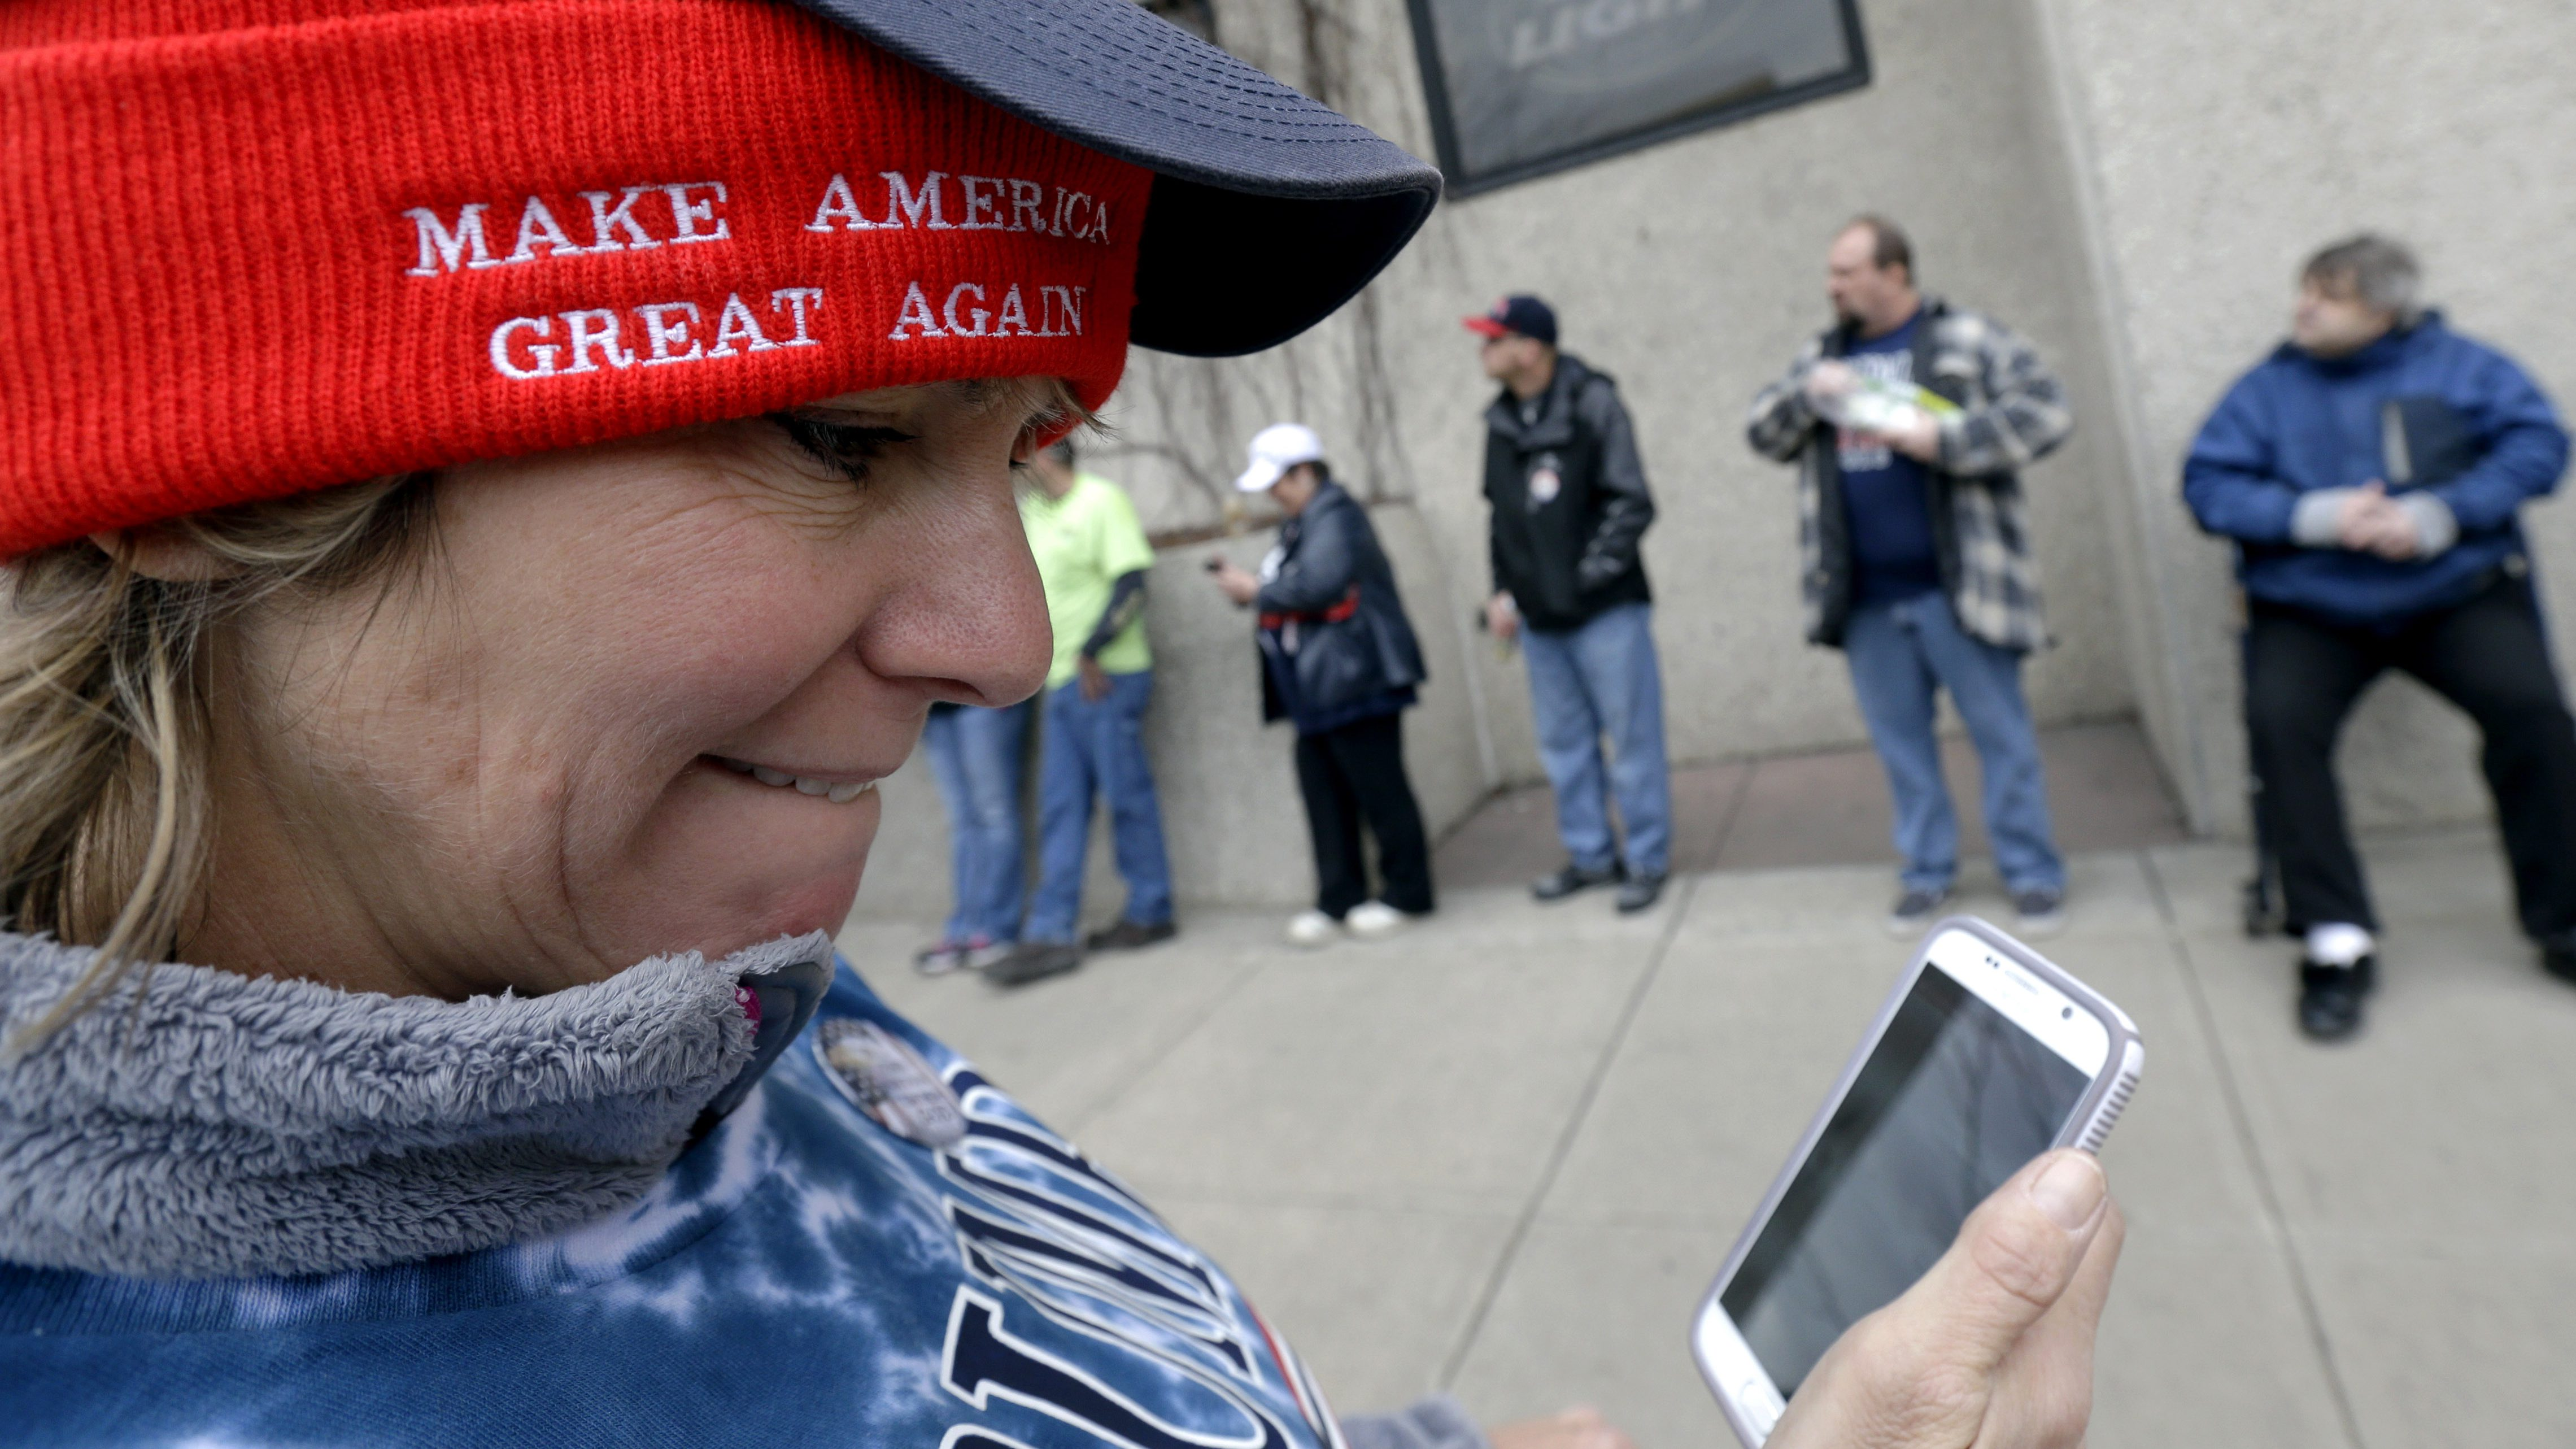 Lori Levis checks her phone outside the Radisson Paper Valley Hotel in Appleton, Wis., Wednesday, March 30, 2016, where Republican presidential candidate Donald Trump is scheduled to appear for a rally. (AP Photo/Nam Y. Huh)